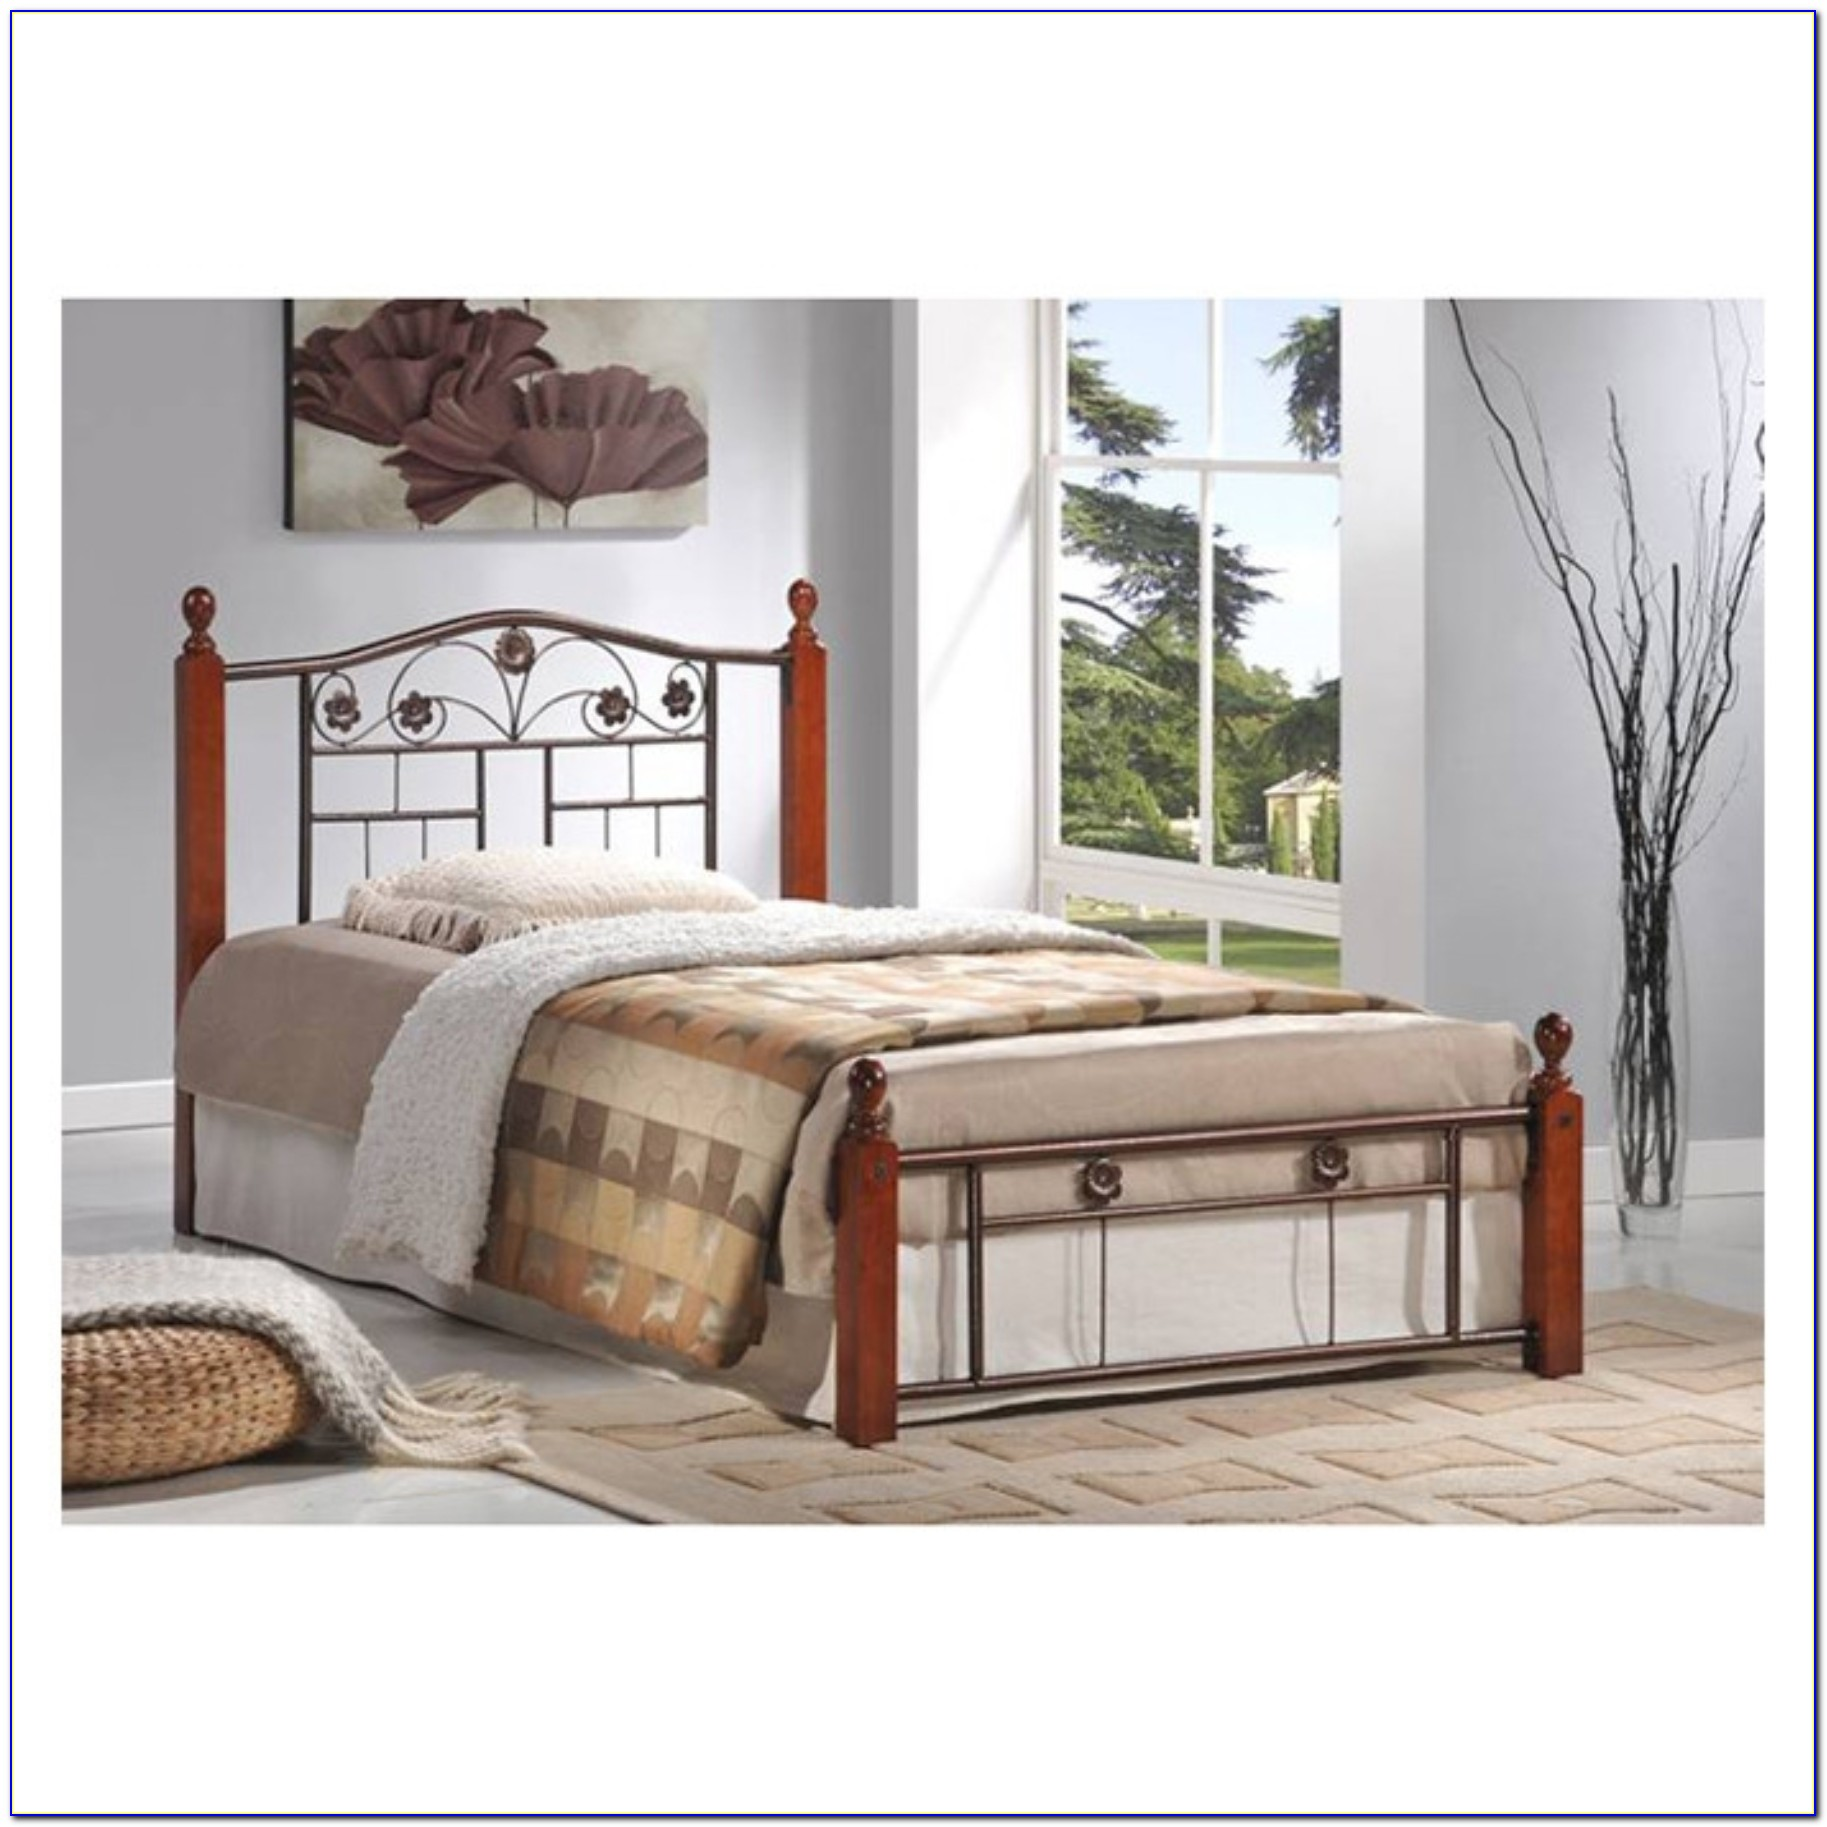 Graco Full Size Headboard Bed Frame Conversion Kit